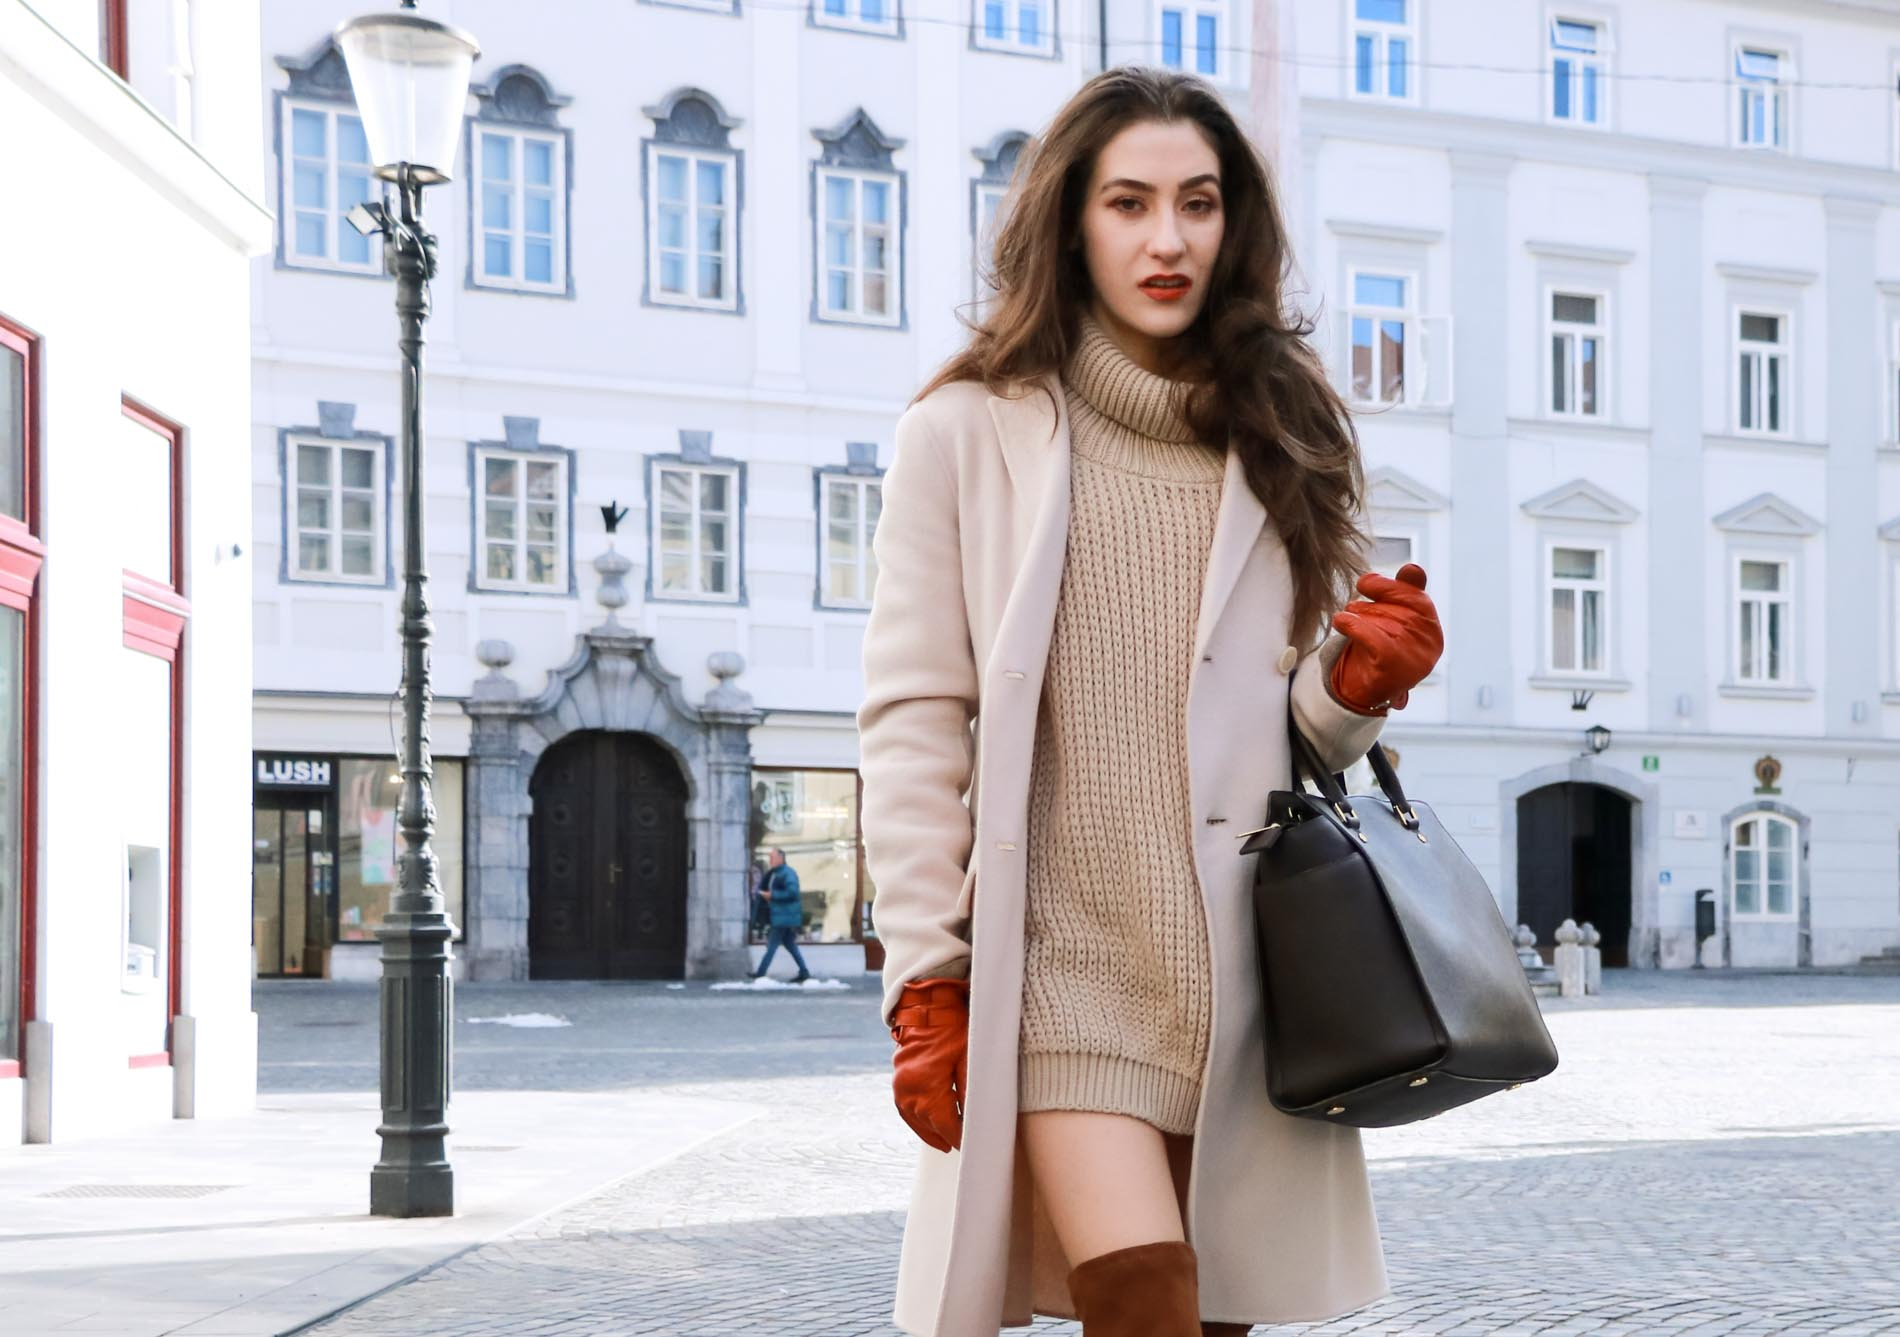 Fashion Blogger Veronika Lipar of Brunette from Wall wearing always fashionable winter outfit